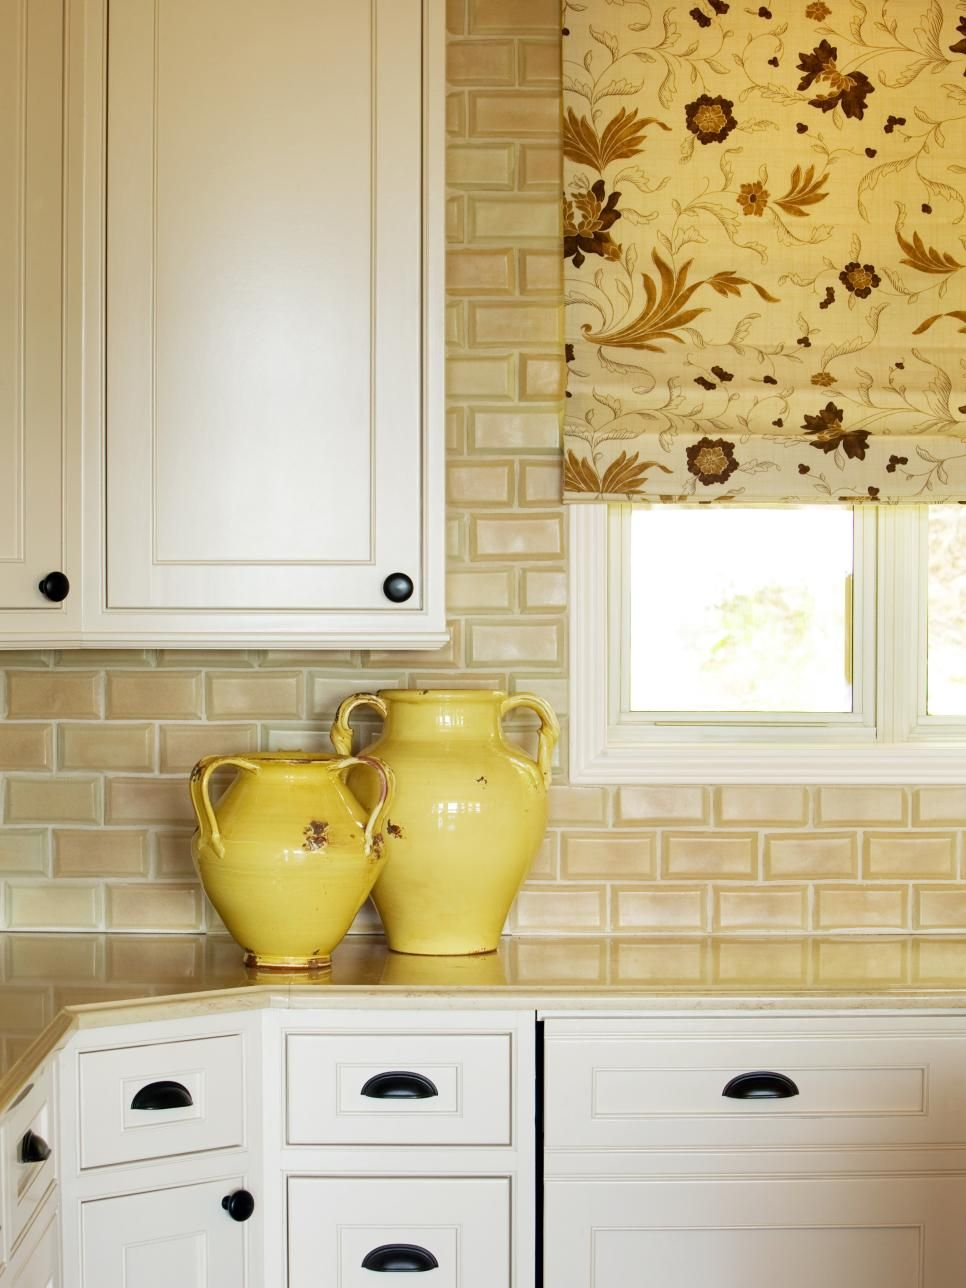 The Red Yellow And White Fl Print Of This Roman Shade Makes A Vibrant Graphic Statement In Kitchen Pale Backsplash Tile Lemon